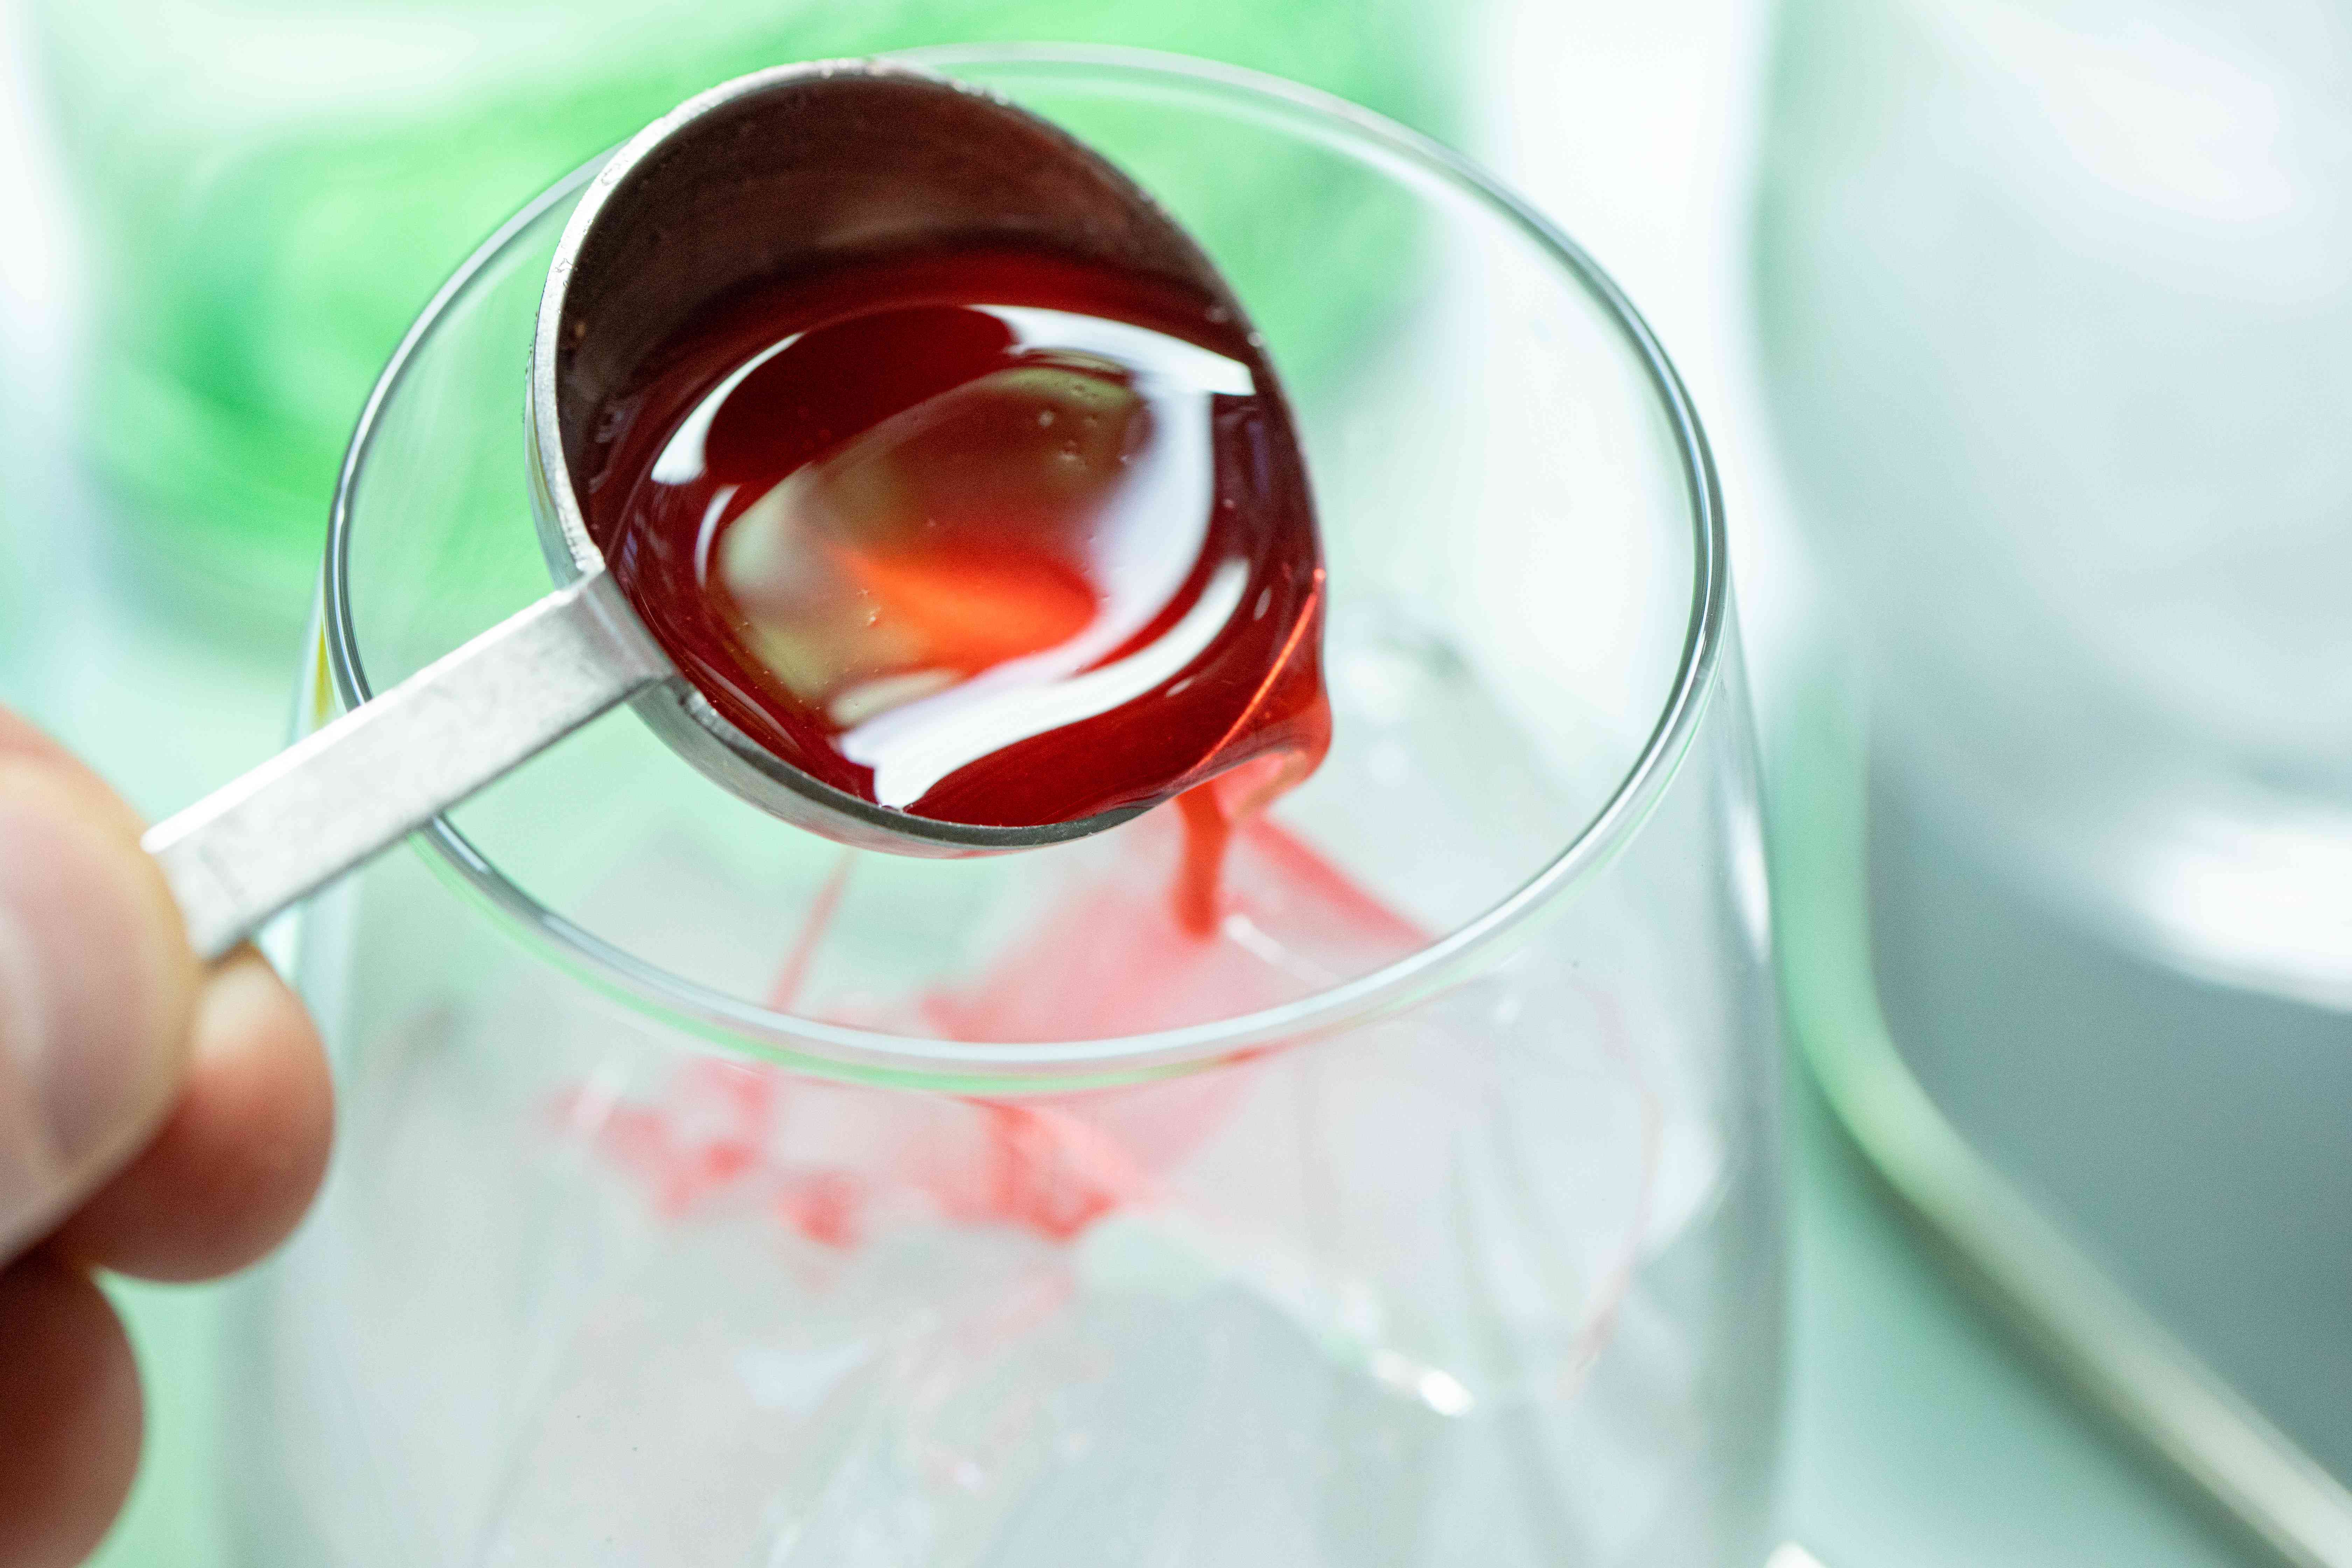 Adding raspberry syrup to an ice filled glass to make Raspberry Ranch Water